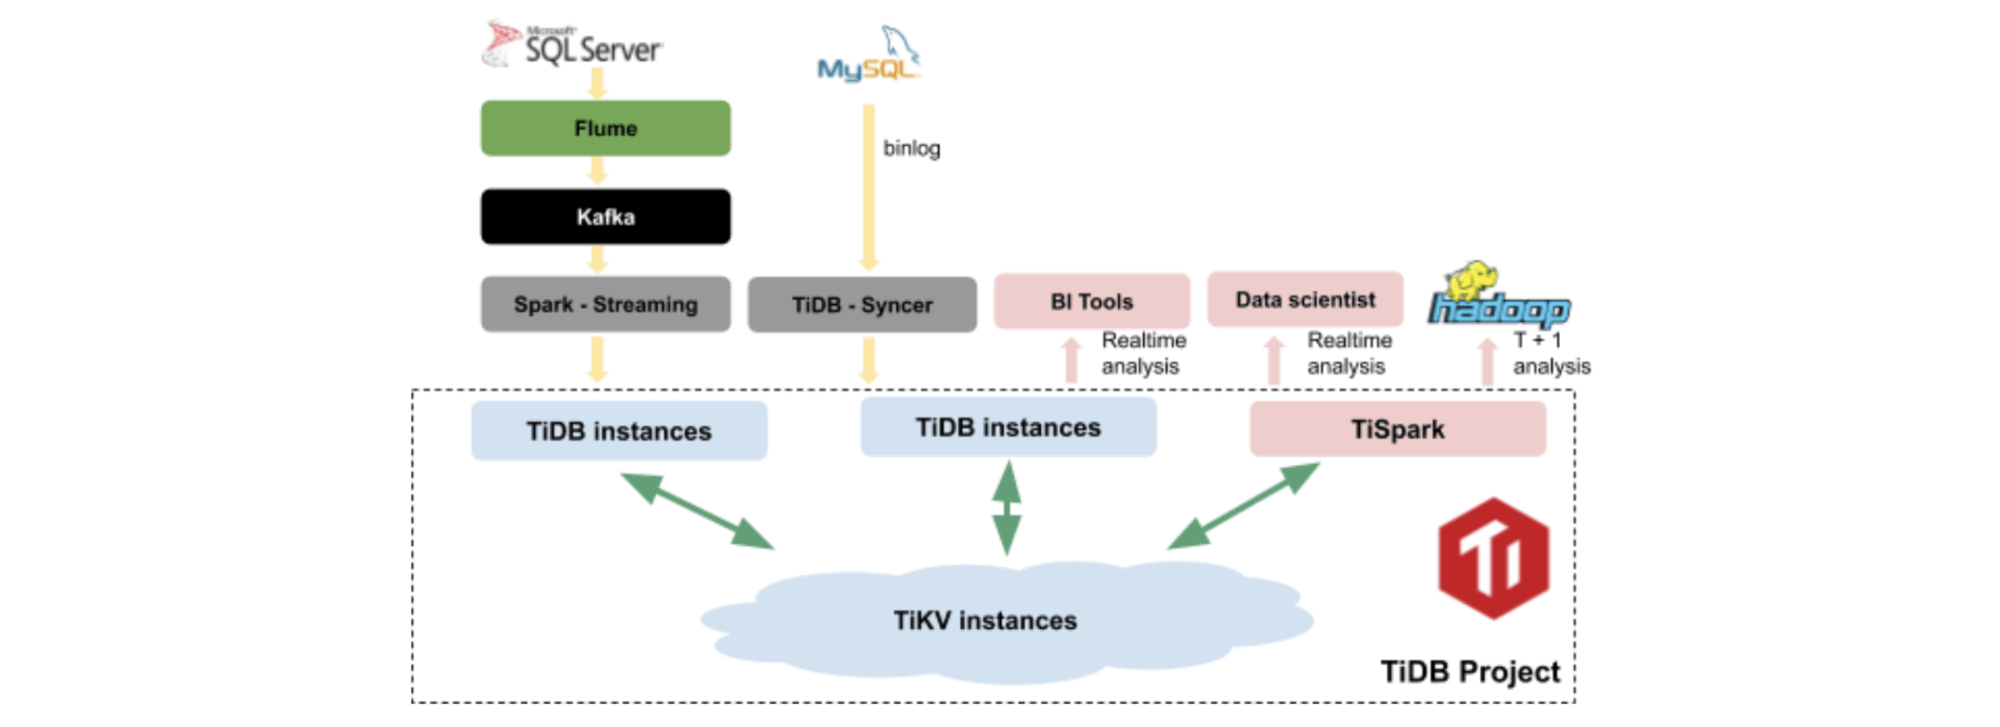 TiDB/TiSpark real-time data warehouse platform